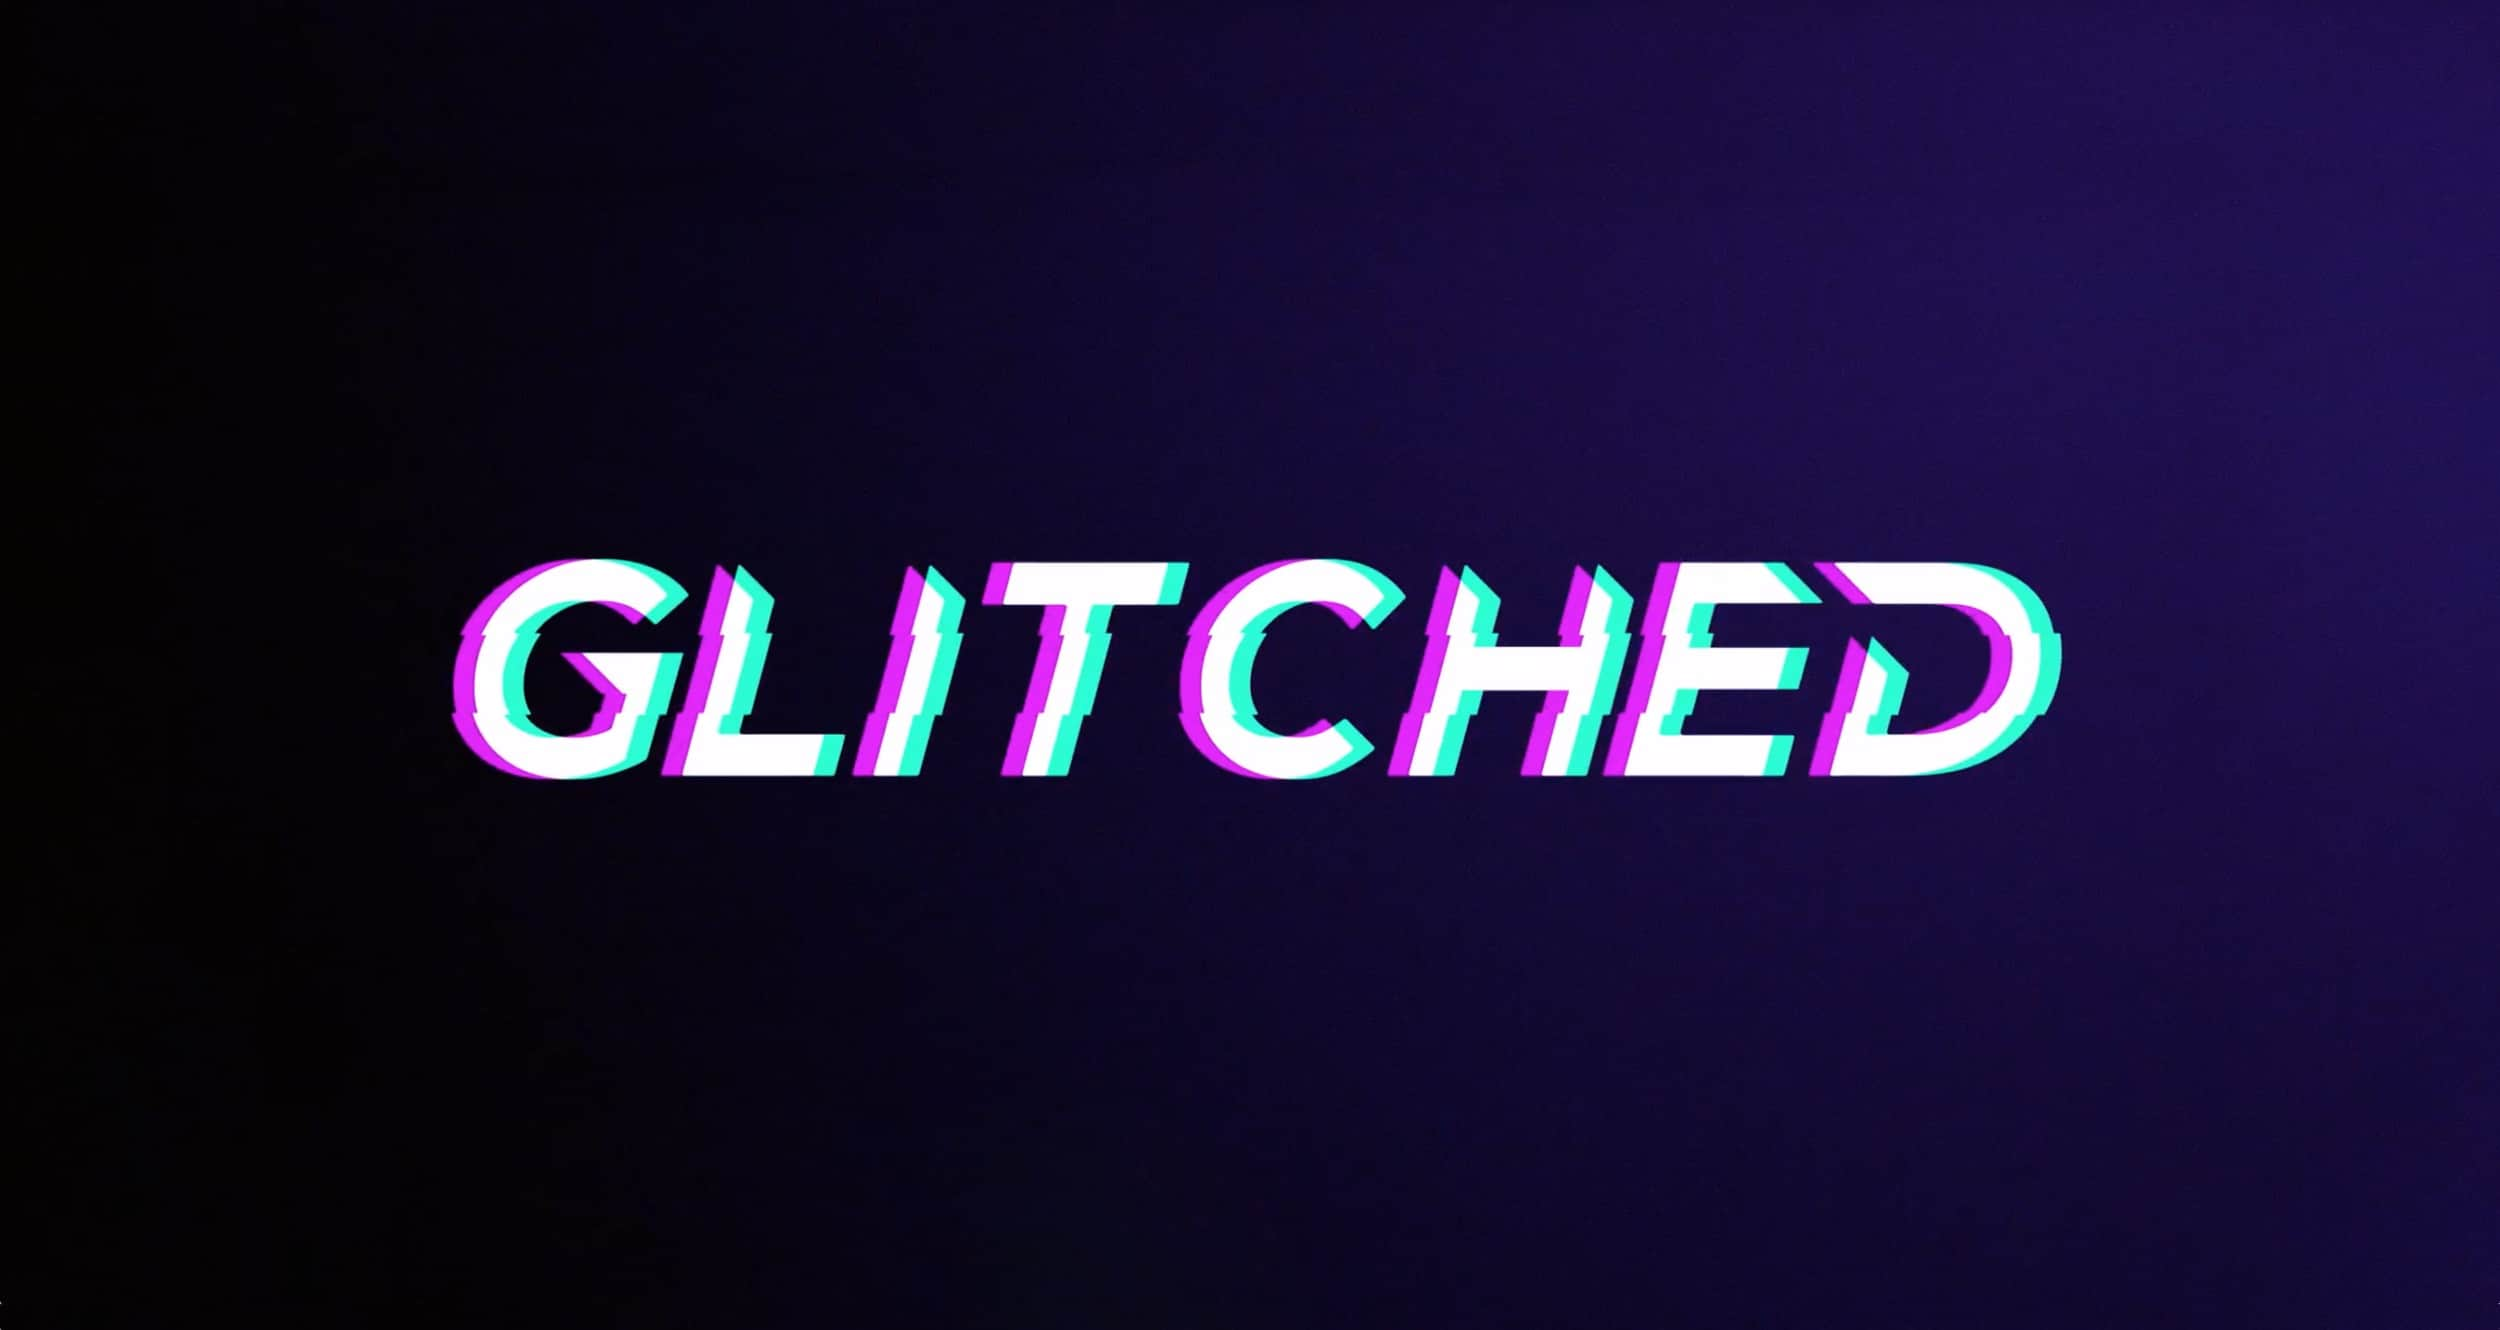 GLITCHED is South Africa's newest show about Video Games